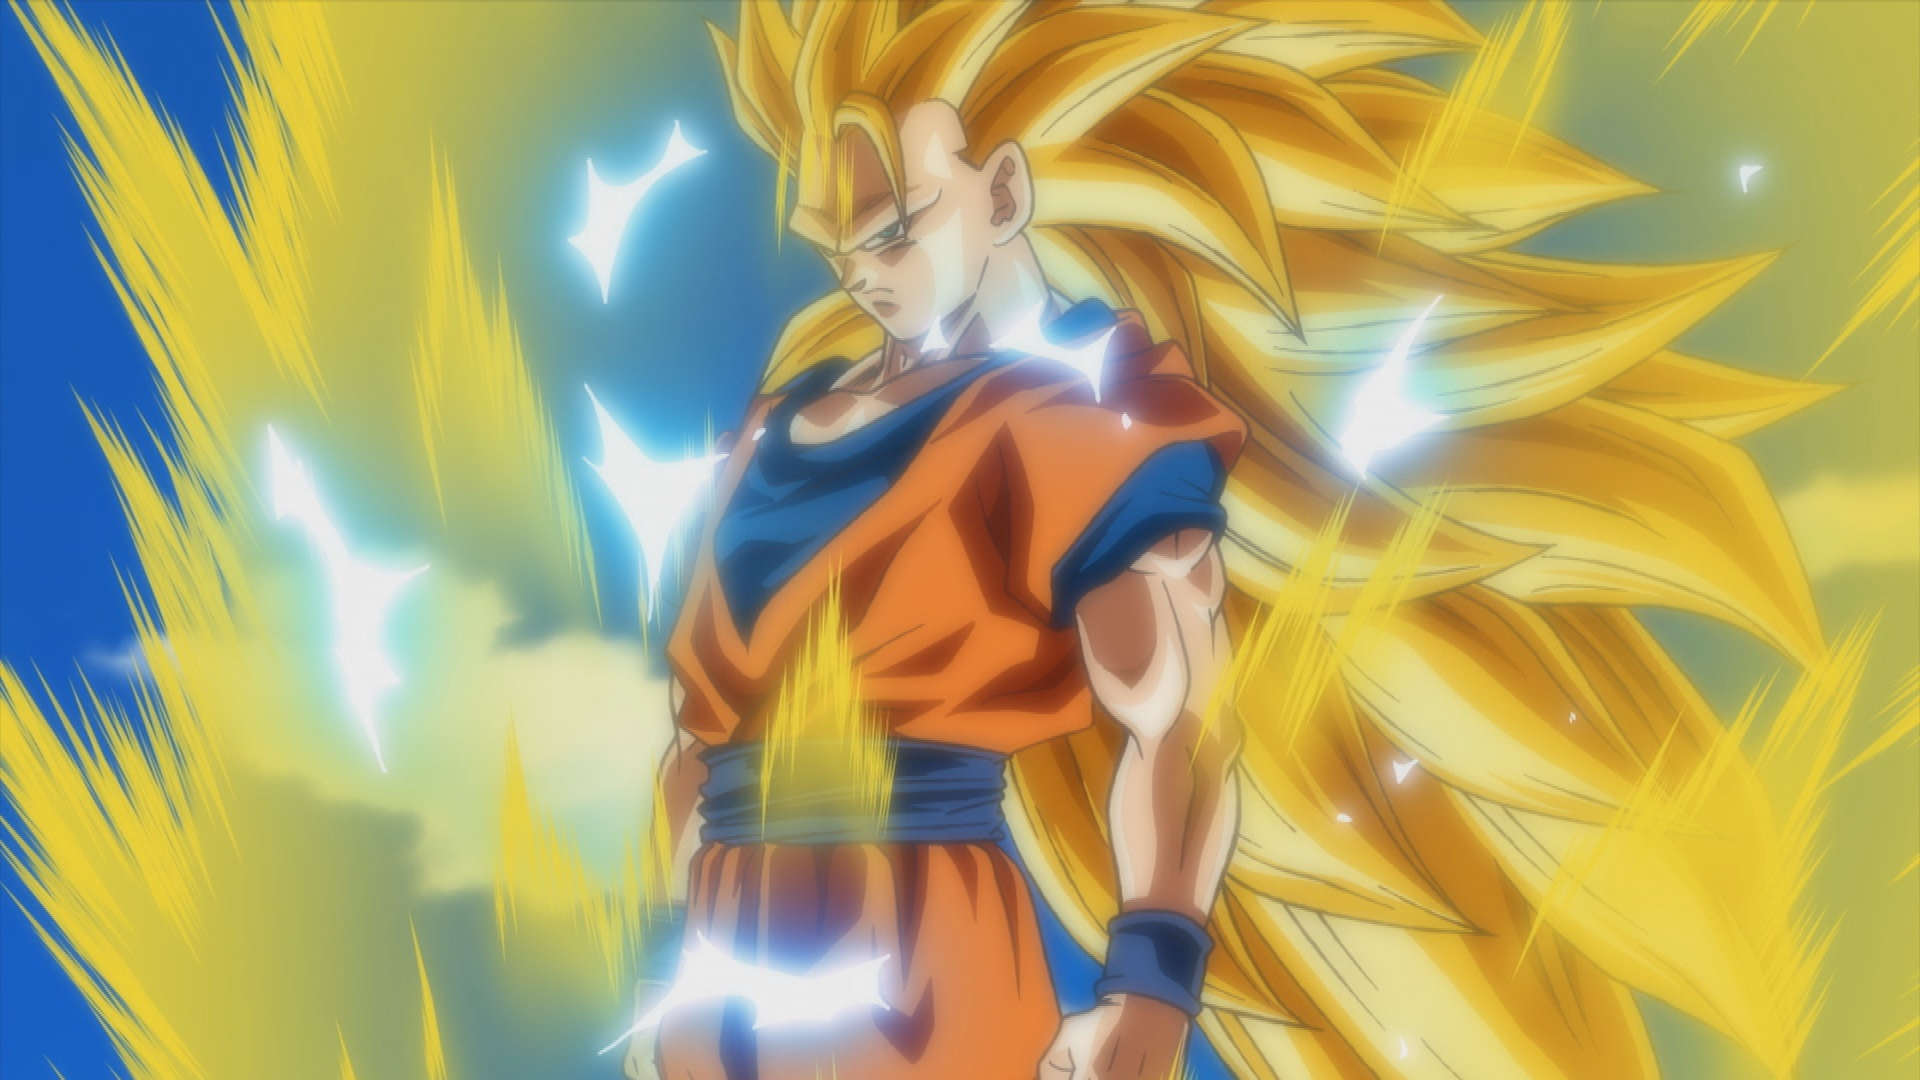 dragon_ball_z_the_battle_of_z_25. dragon_ball_z_the_battle_of_z_26. dragon_ball_z_the_battle_of_z_27. dragon_ball_z_the_battle_of_z_28